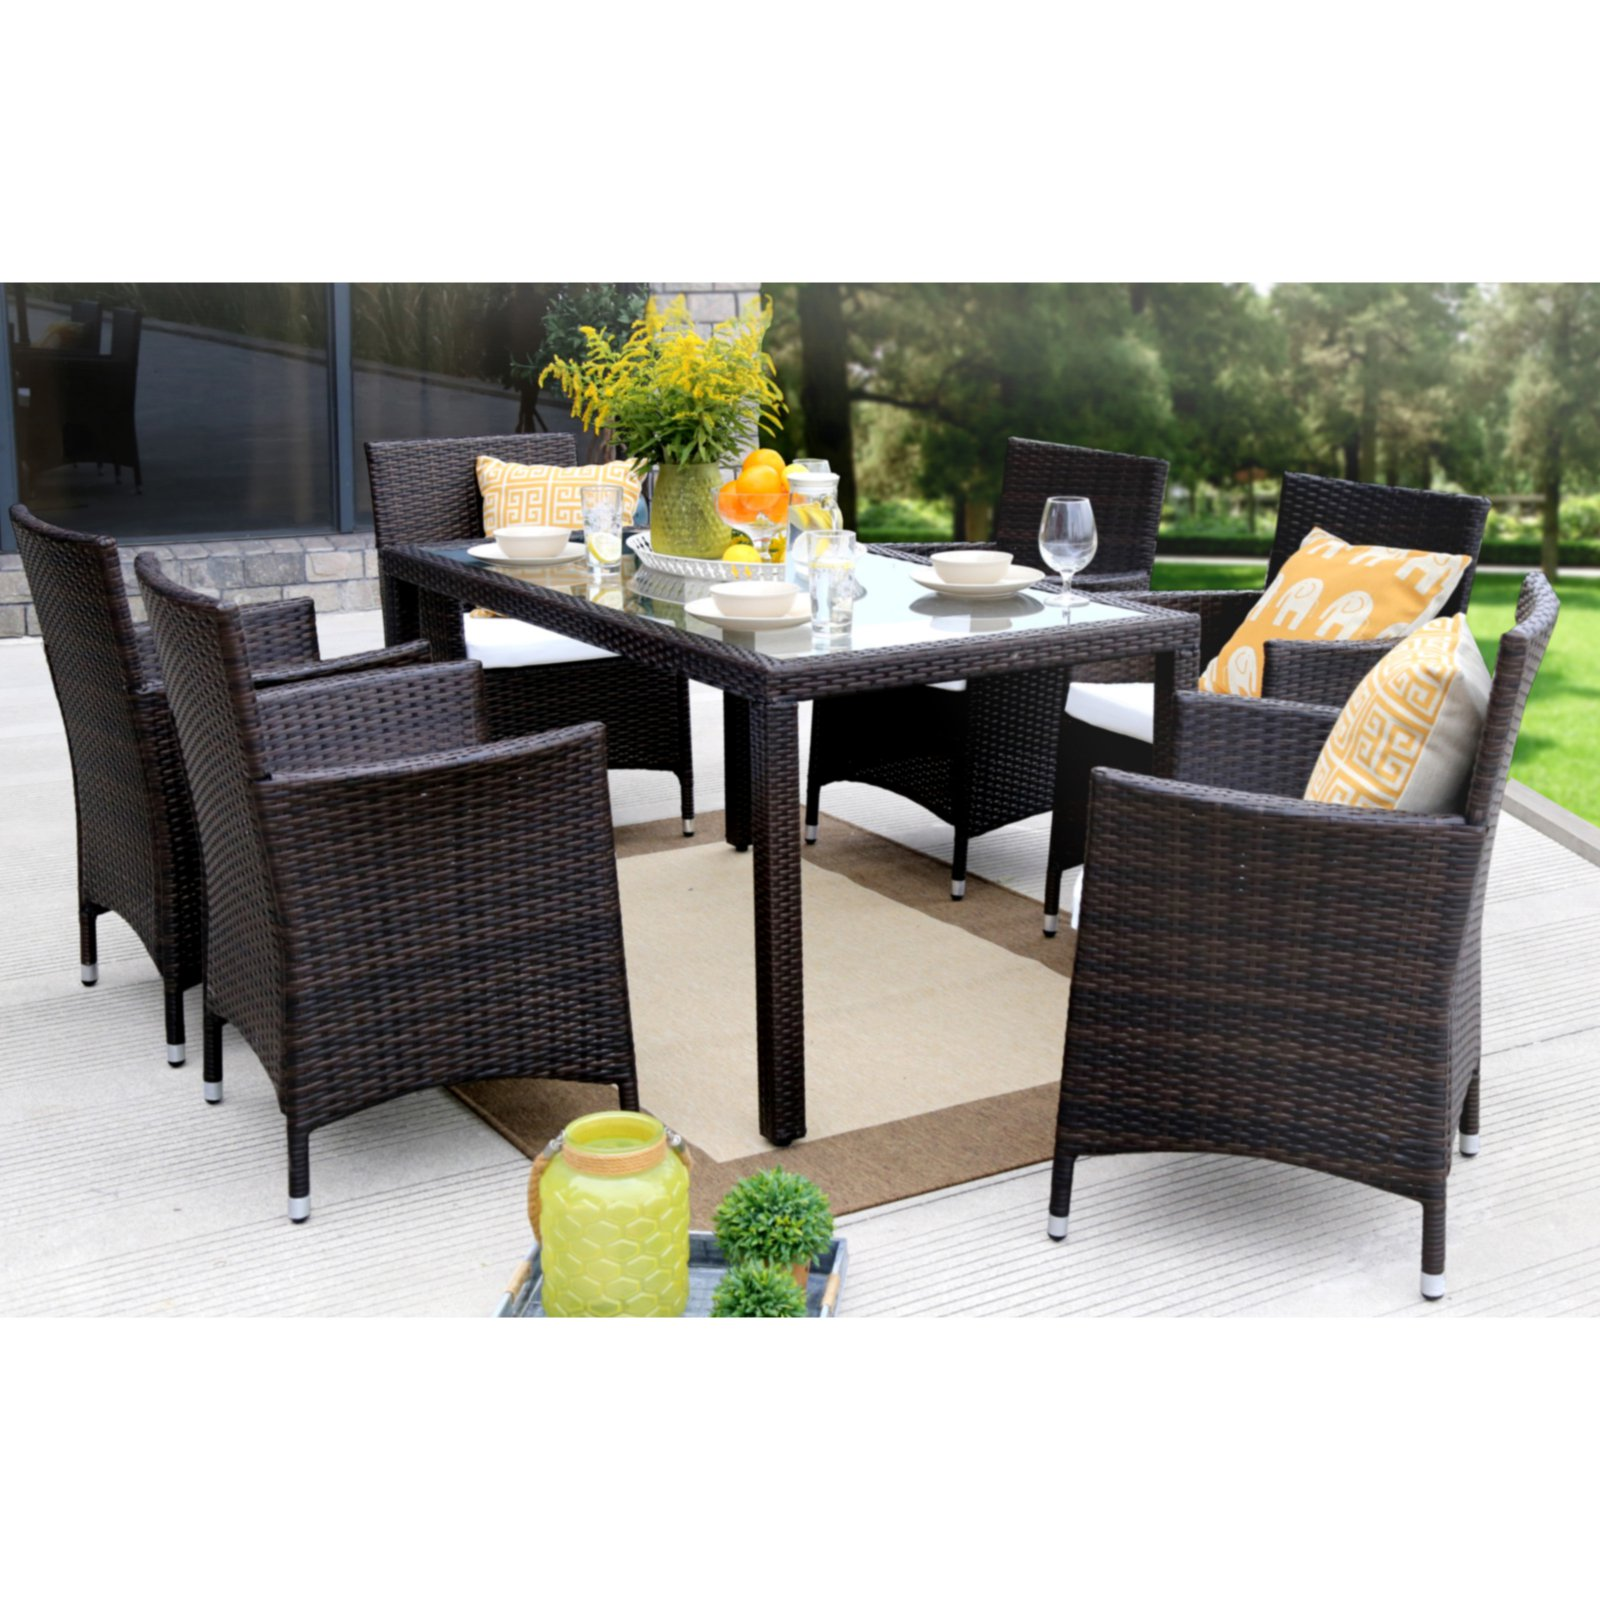 Baner Garden Outdoor Furniture Complete Patio Cushion PE Wicker Rattan  Garden Dining Set, Brown,